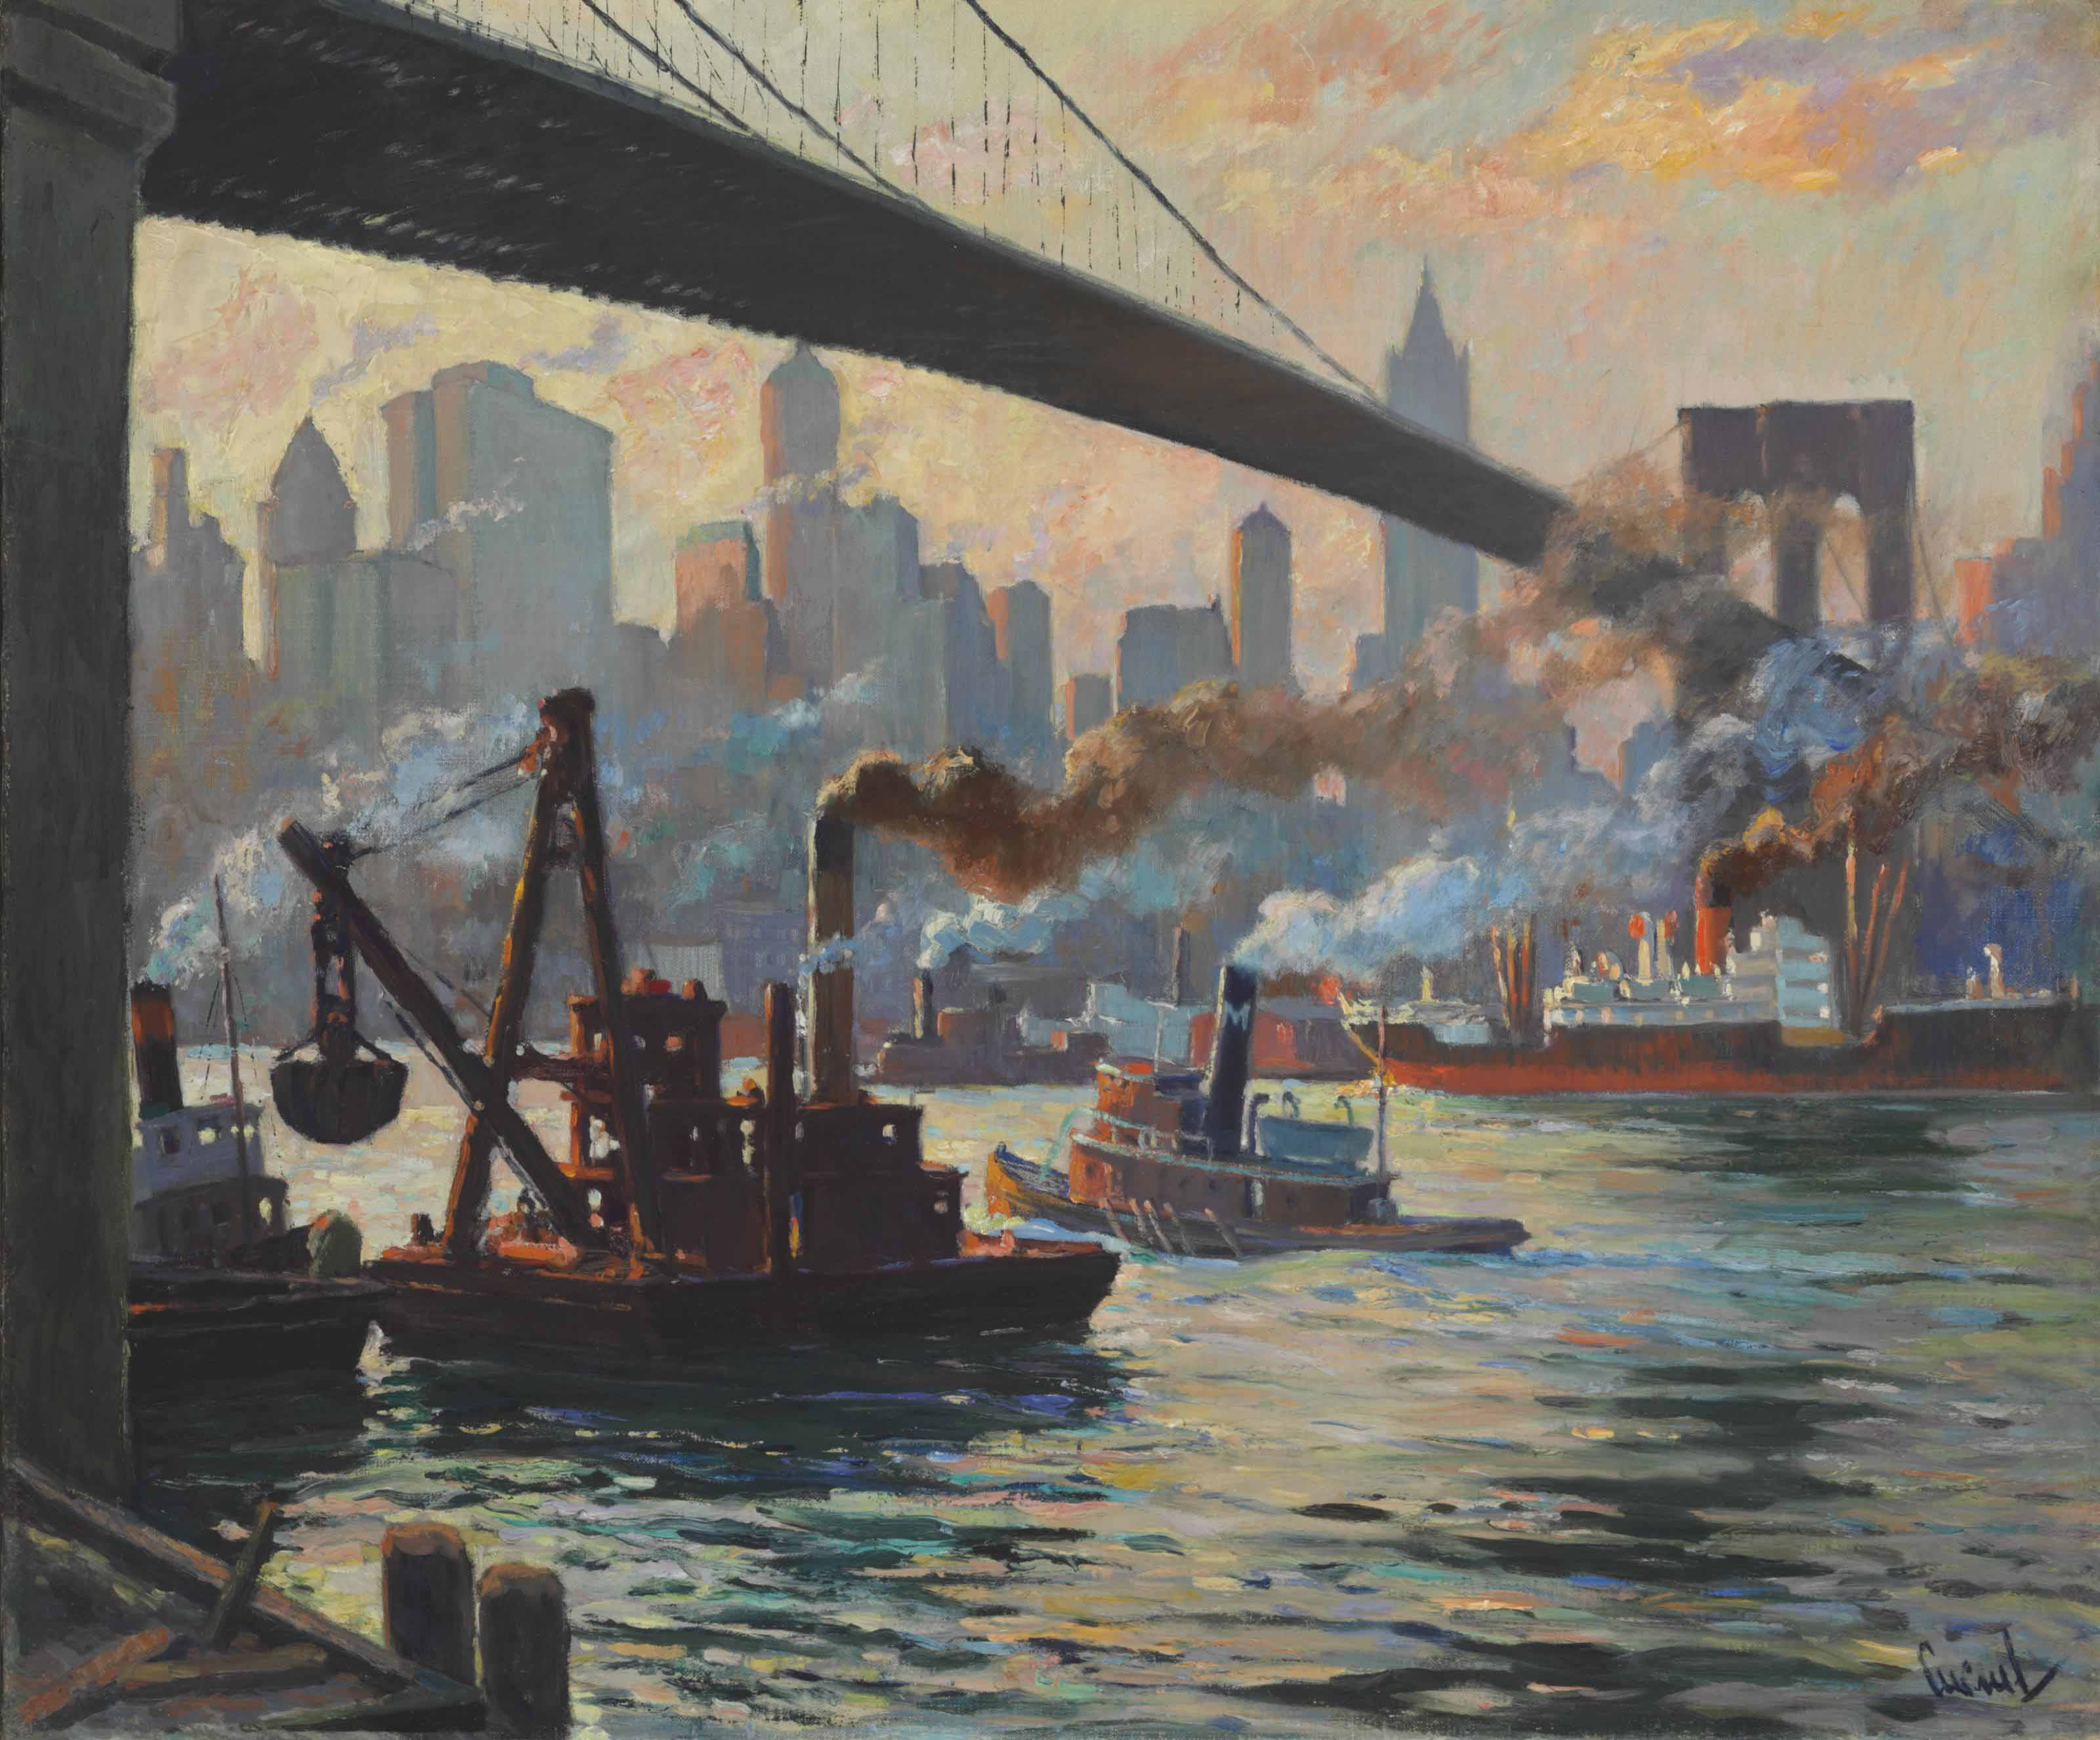 The Day's Work, East River, New York